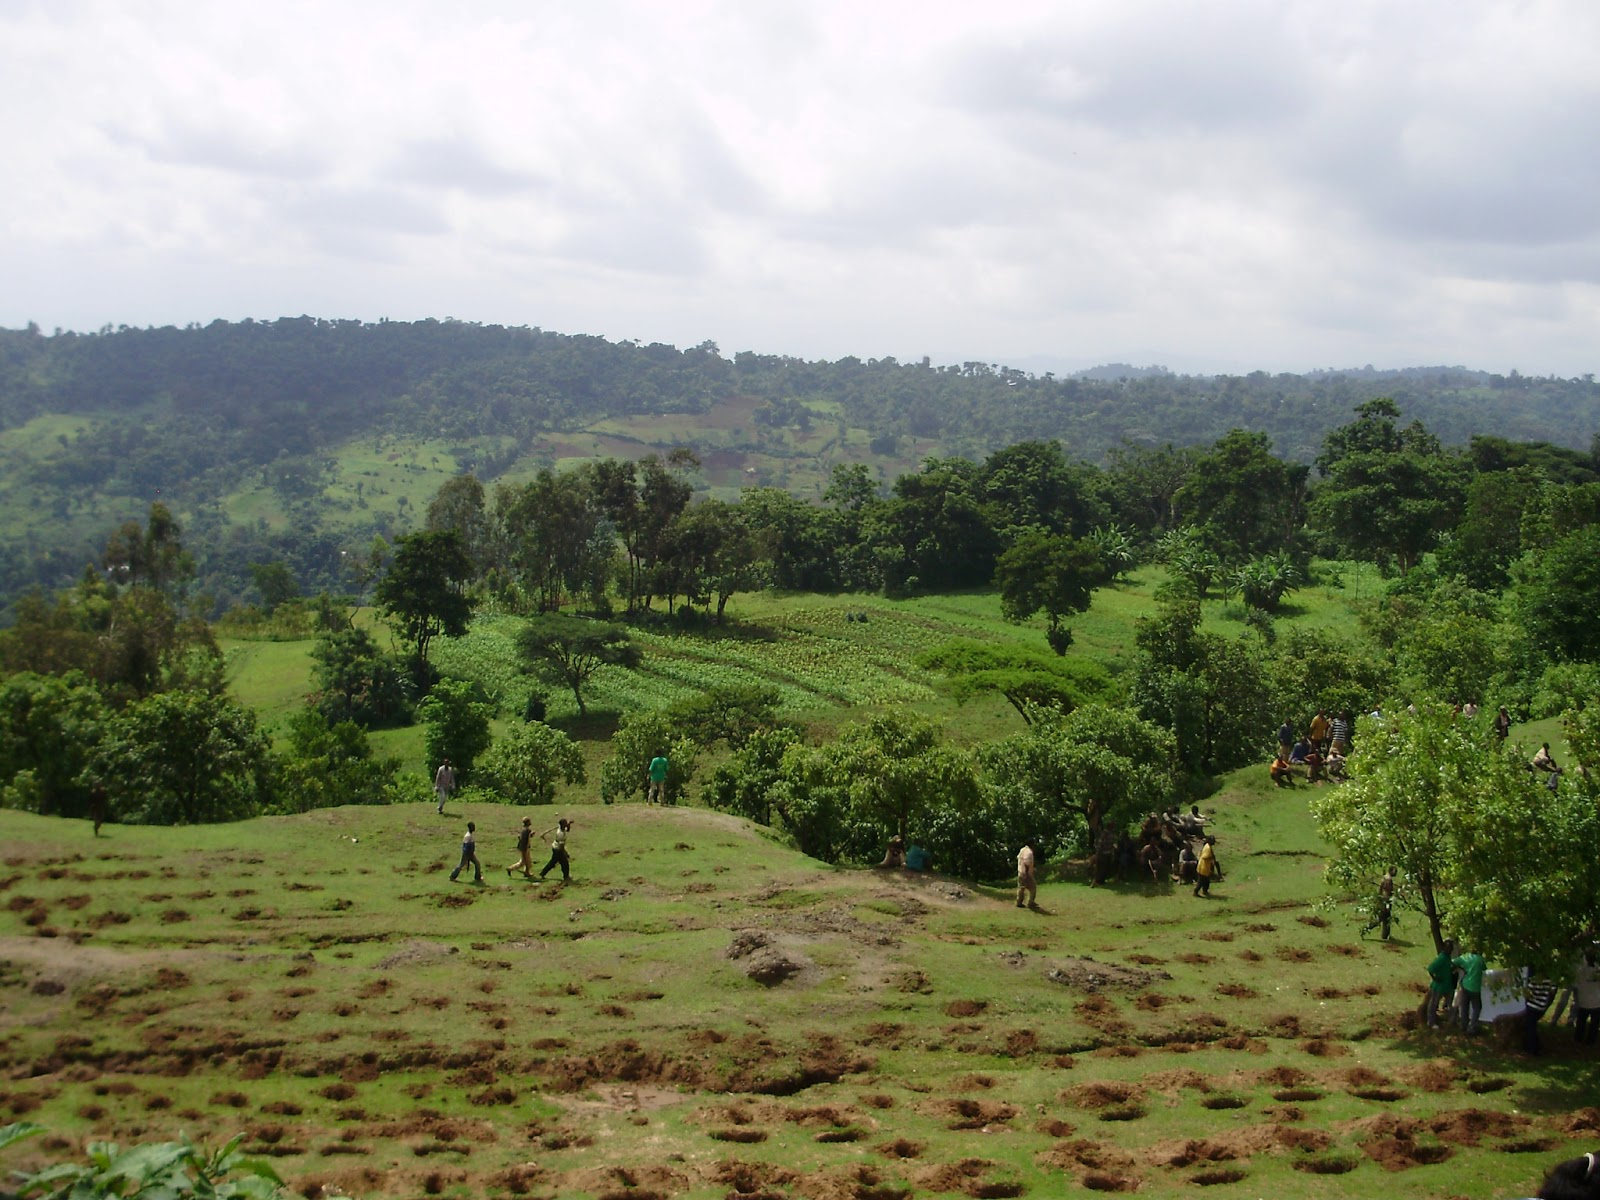 Agroforestry and land productivity   evidence from rural Rthiopia